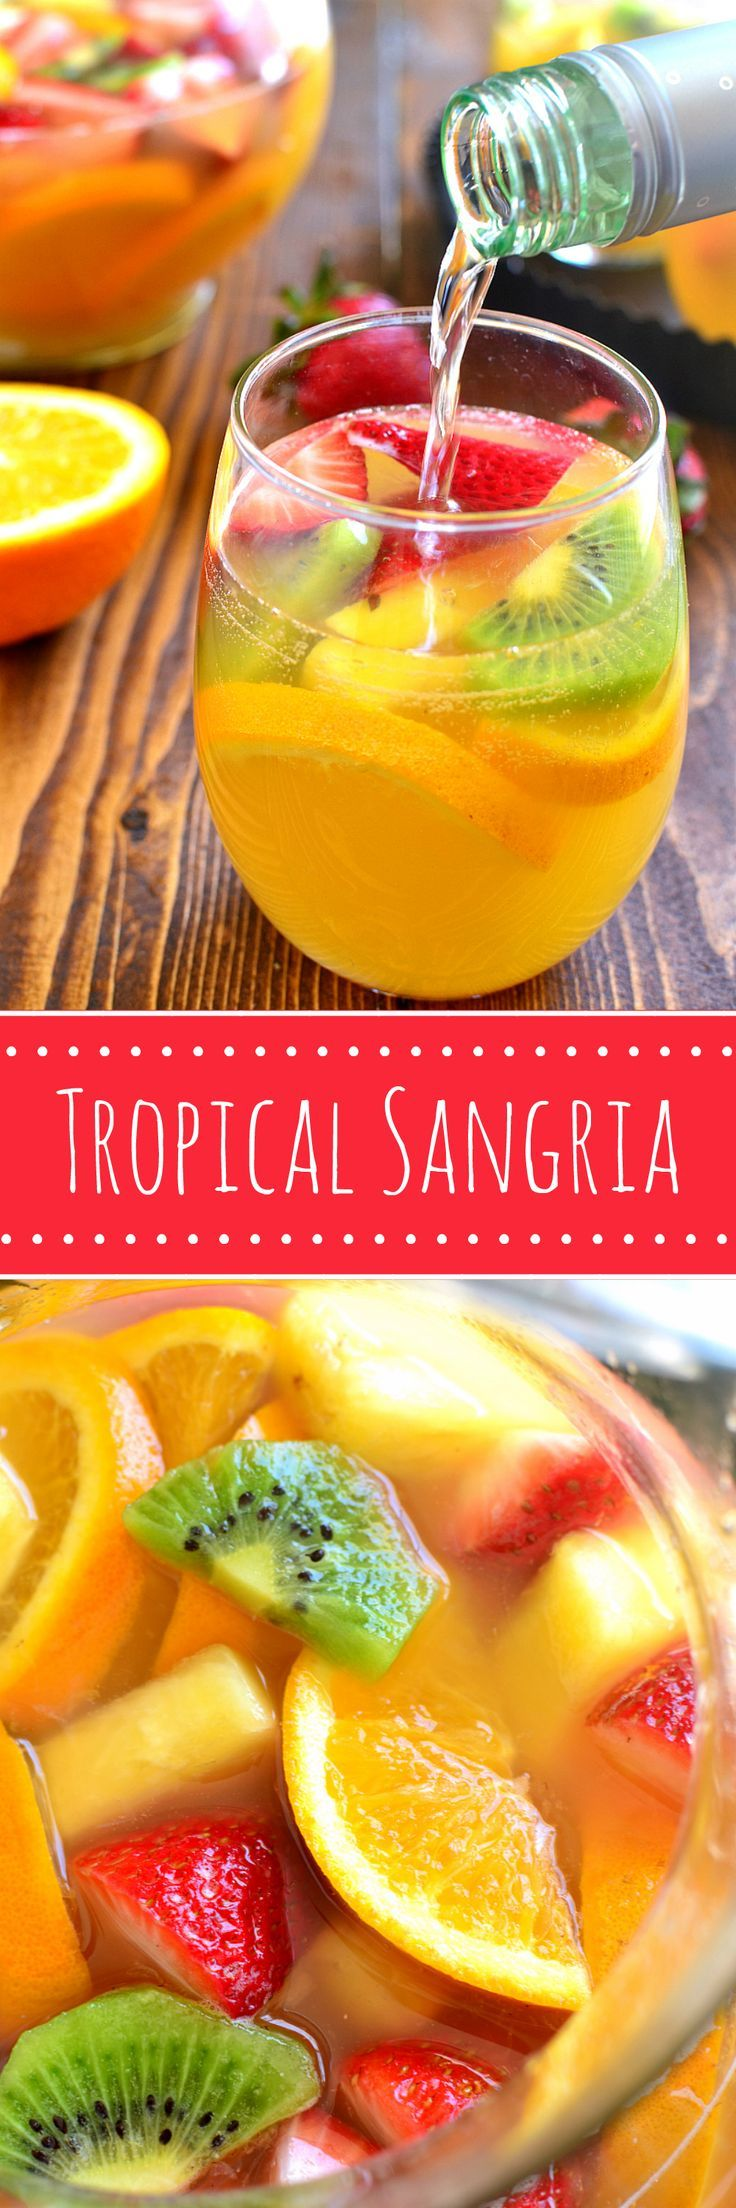 Tropical Sangria combines sweet white wine with all things tropical! Perfect for summer!: